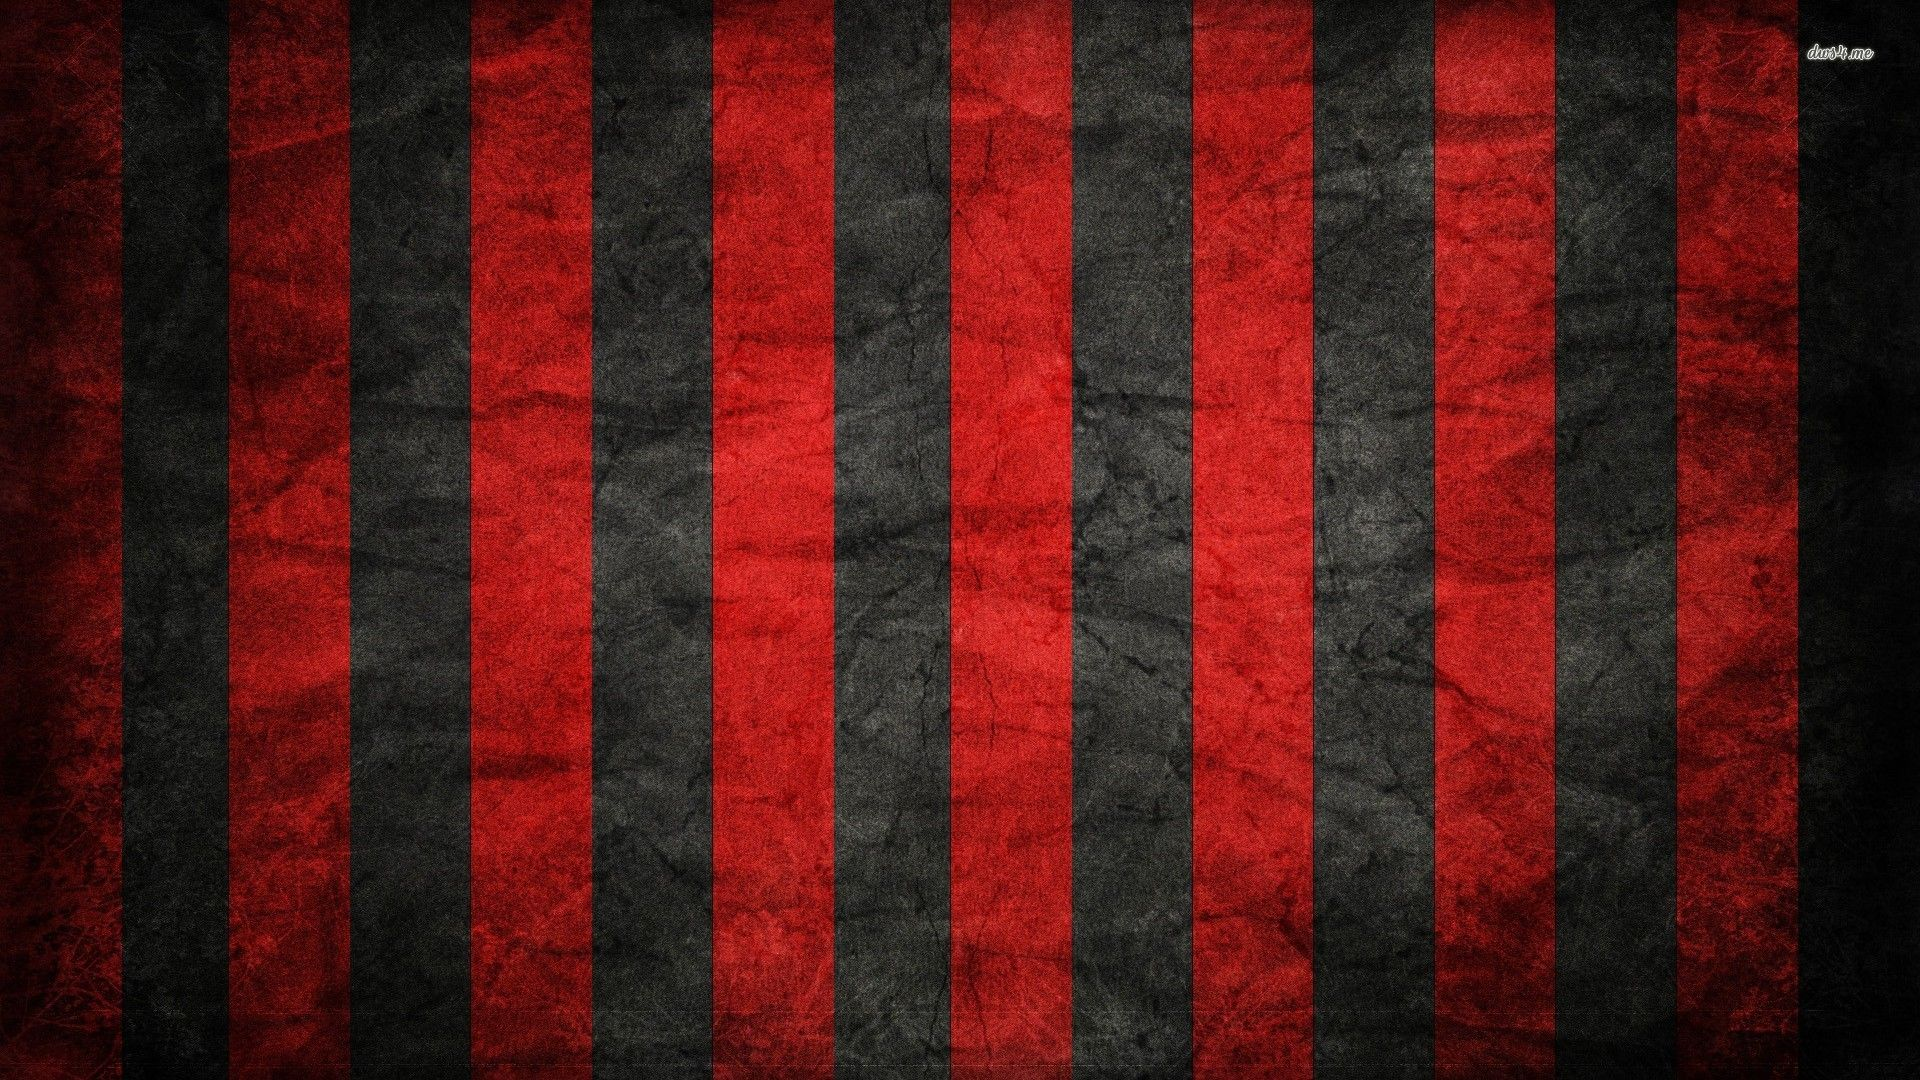 Black And Red Striped Wallpaper HD Wallpapers and